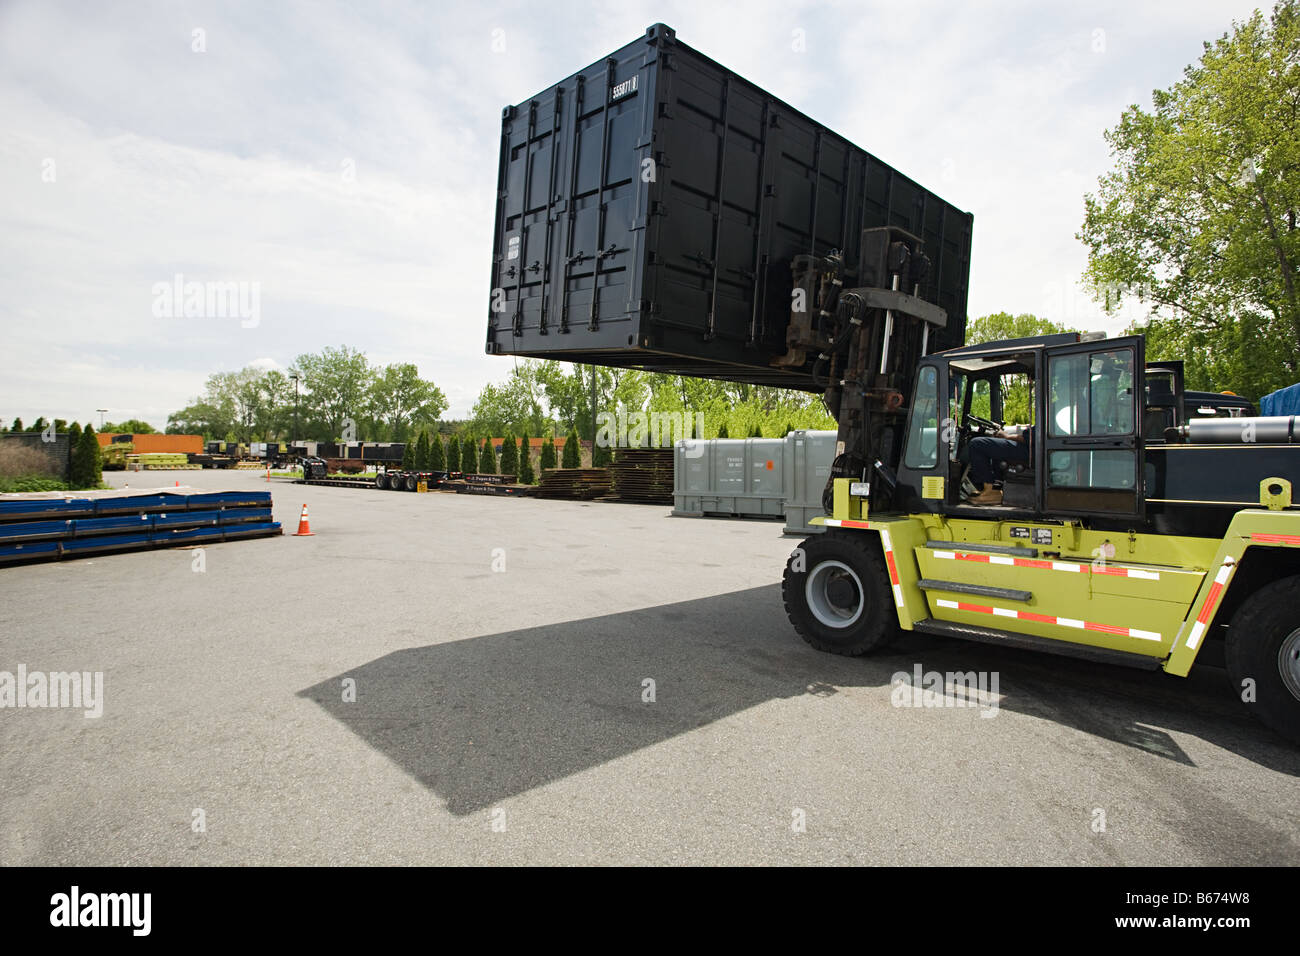 Forklift truck with cargo container - Stock Image